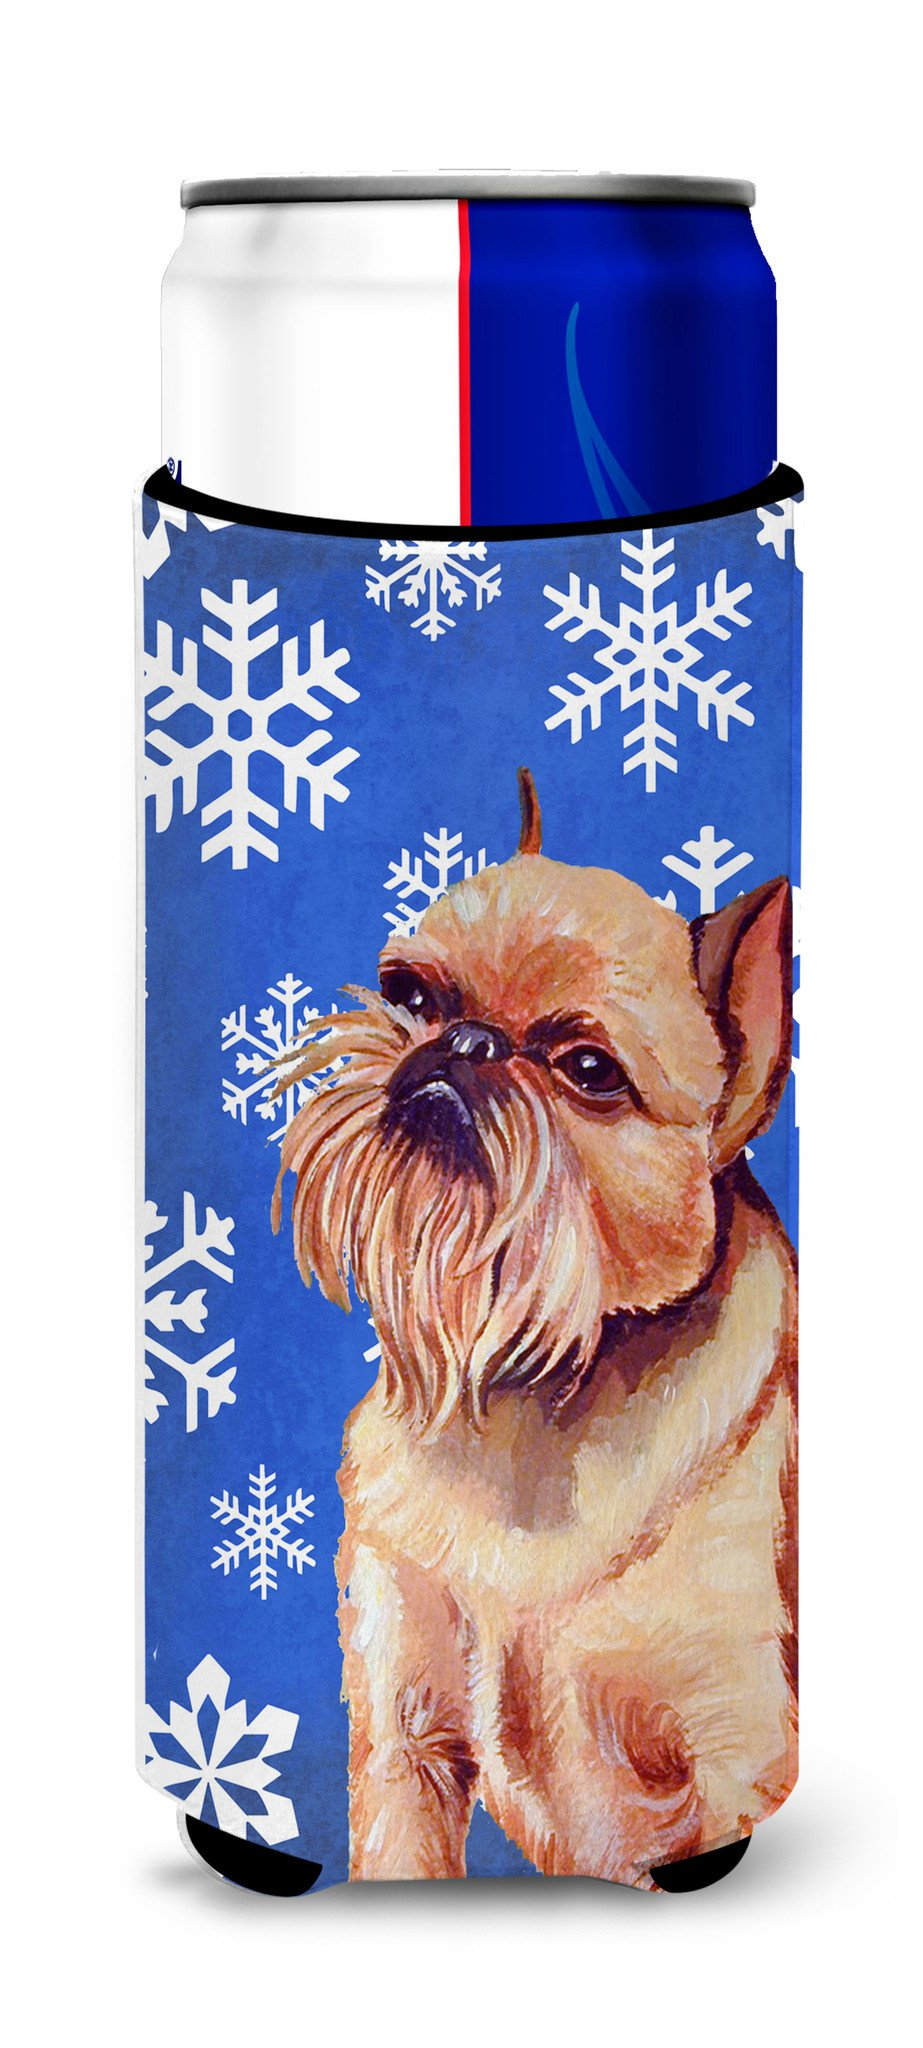 Brussels Griffon Winter Snowflakes Holiday Ultra Beverage Insulators for slim cans LH9269MUK by Caroline's Treasures